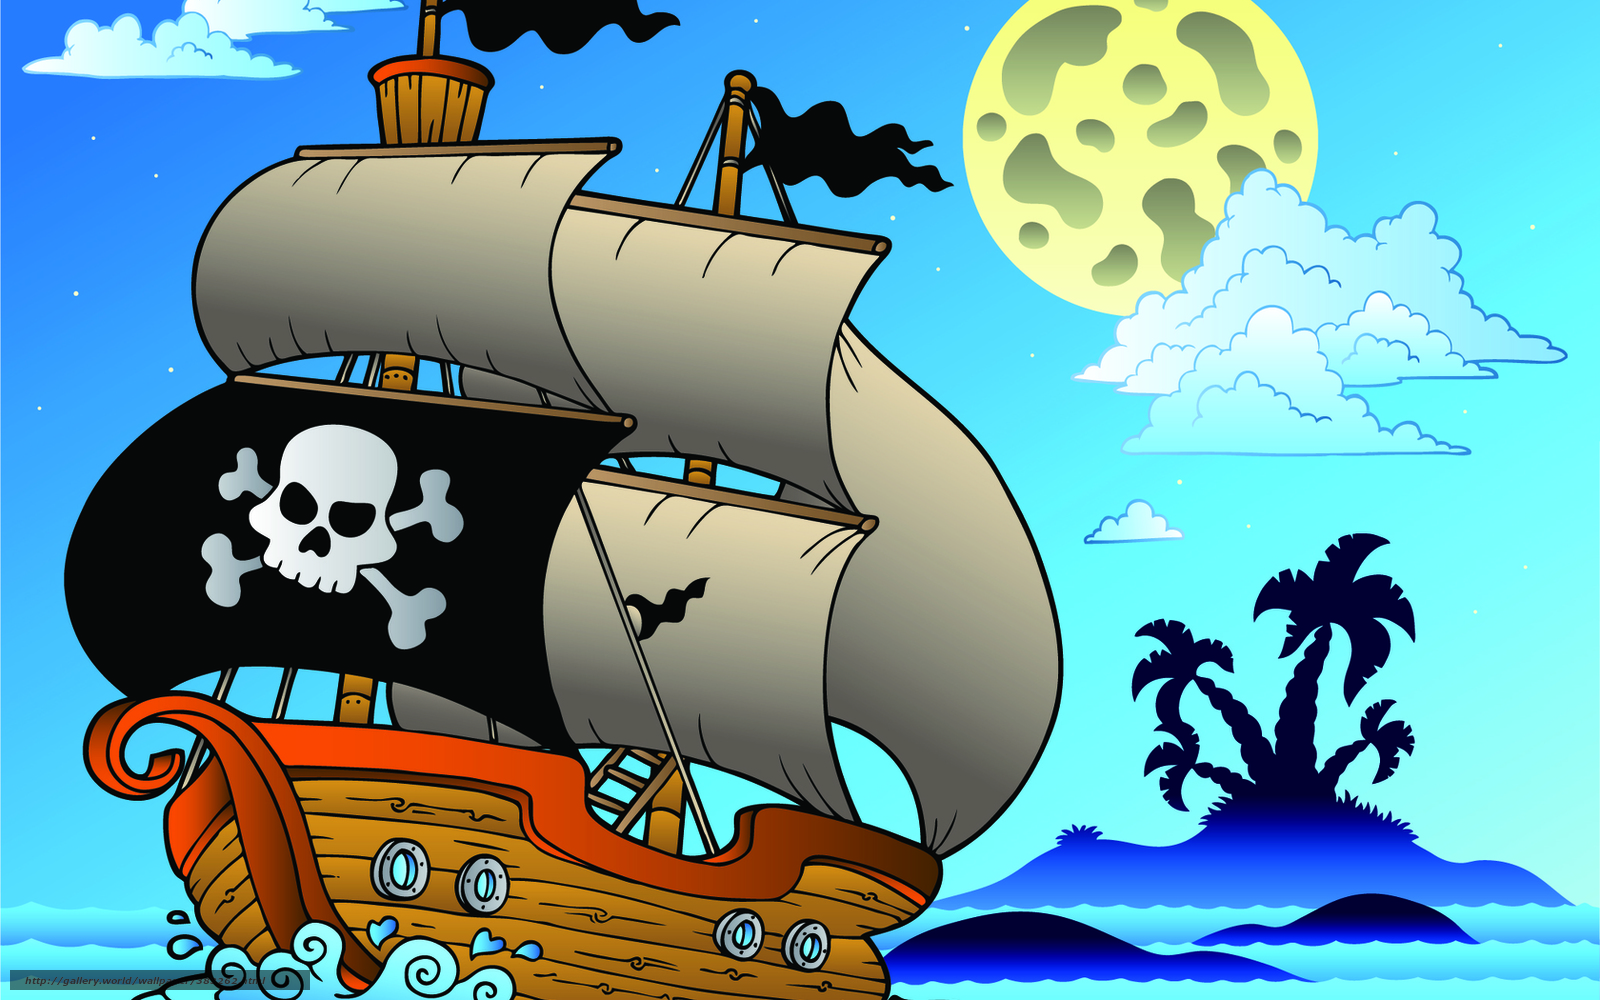 Pirate Background Stock Images RoyaltyFree Images